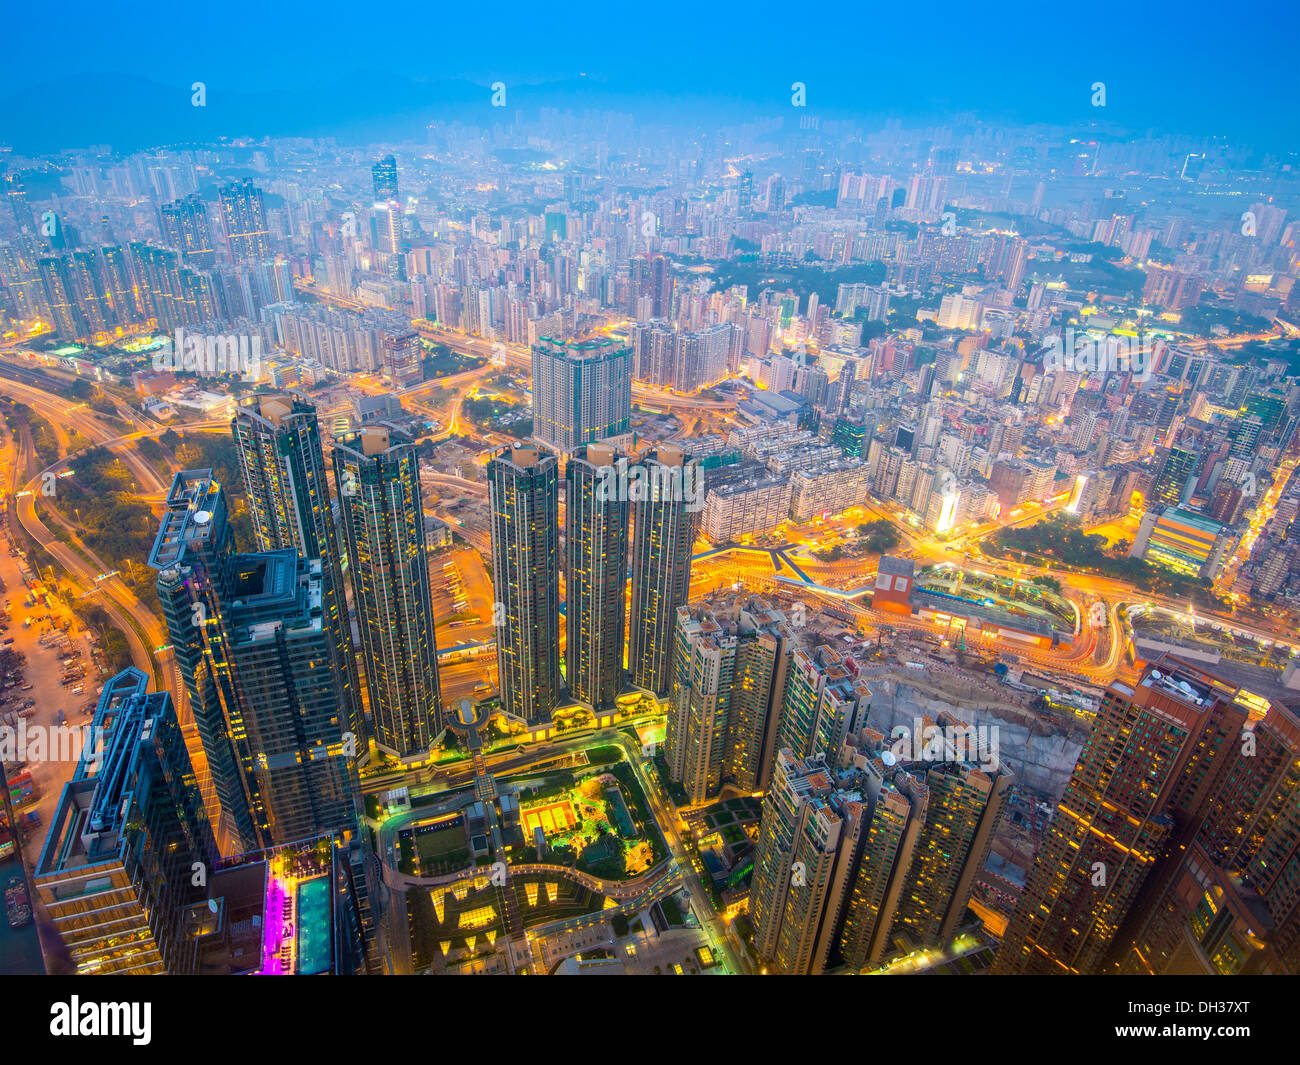 Hong Kong cityscape with hazy skies in the Kowloon district. - Stock Image